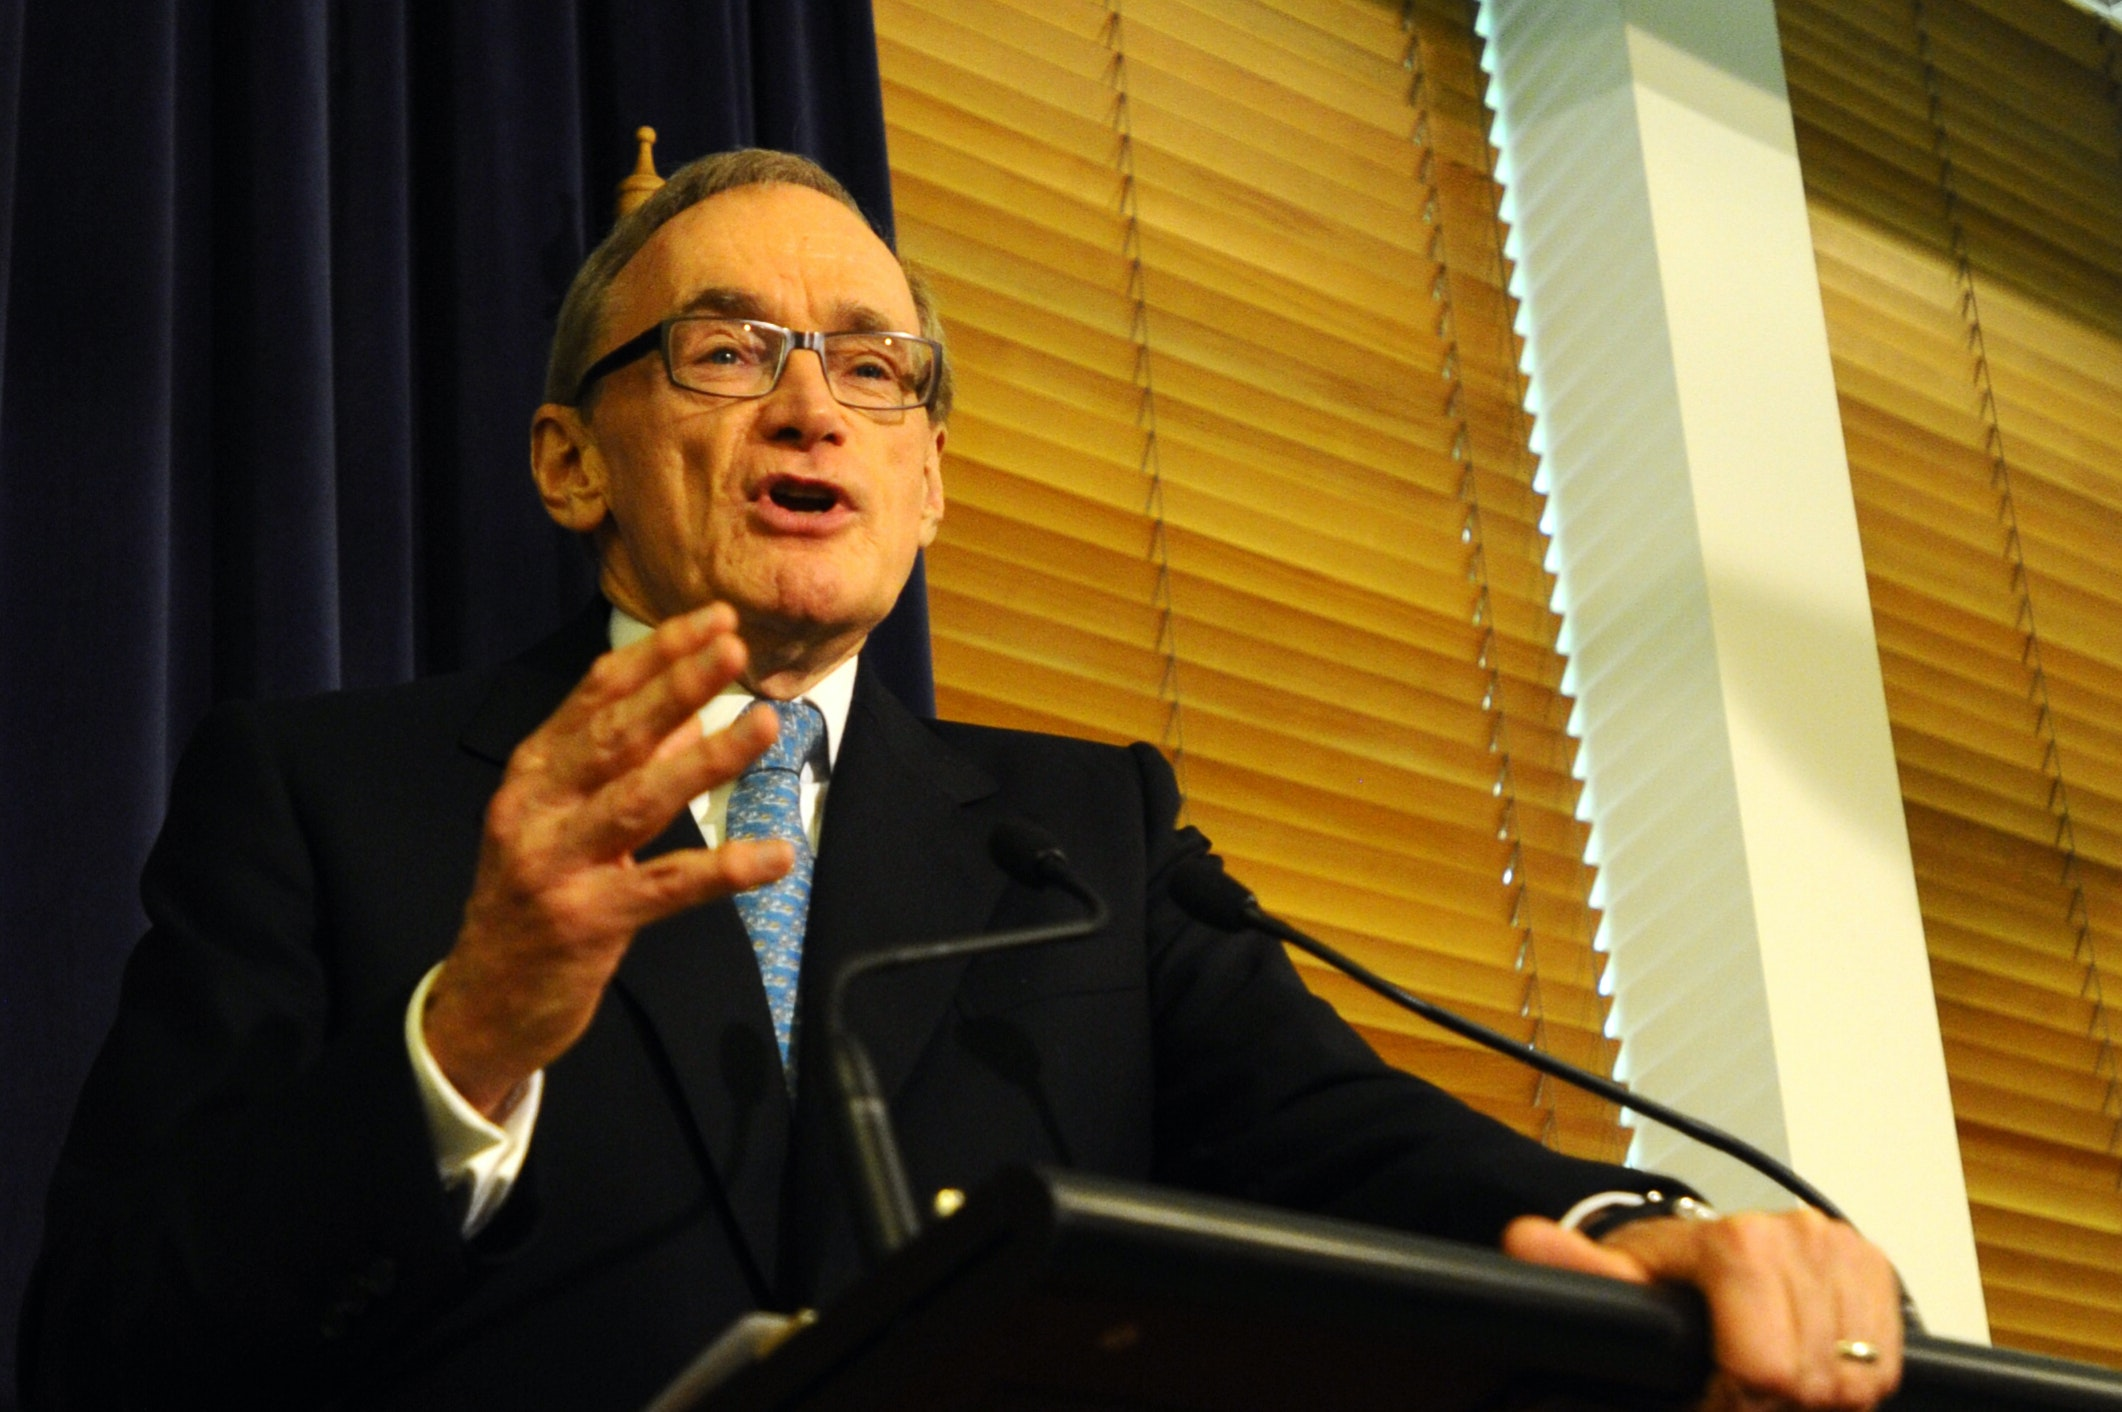 Bob Carr leaves, regretting the Labor government's lack of cunning and canniness